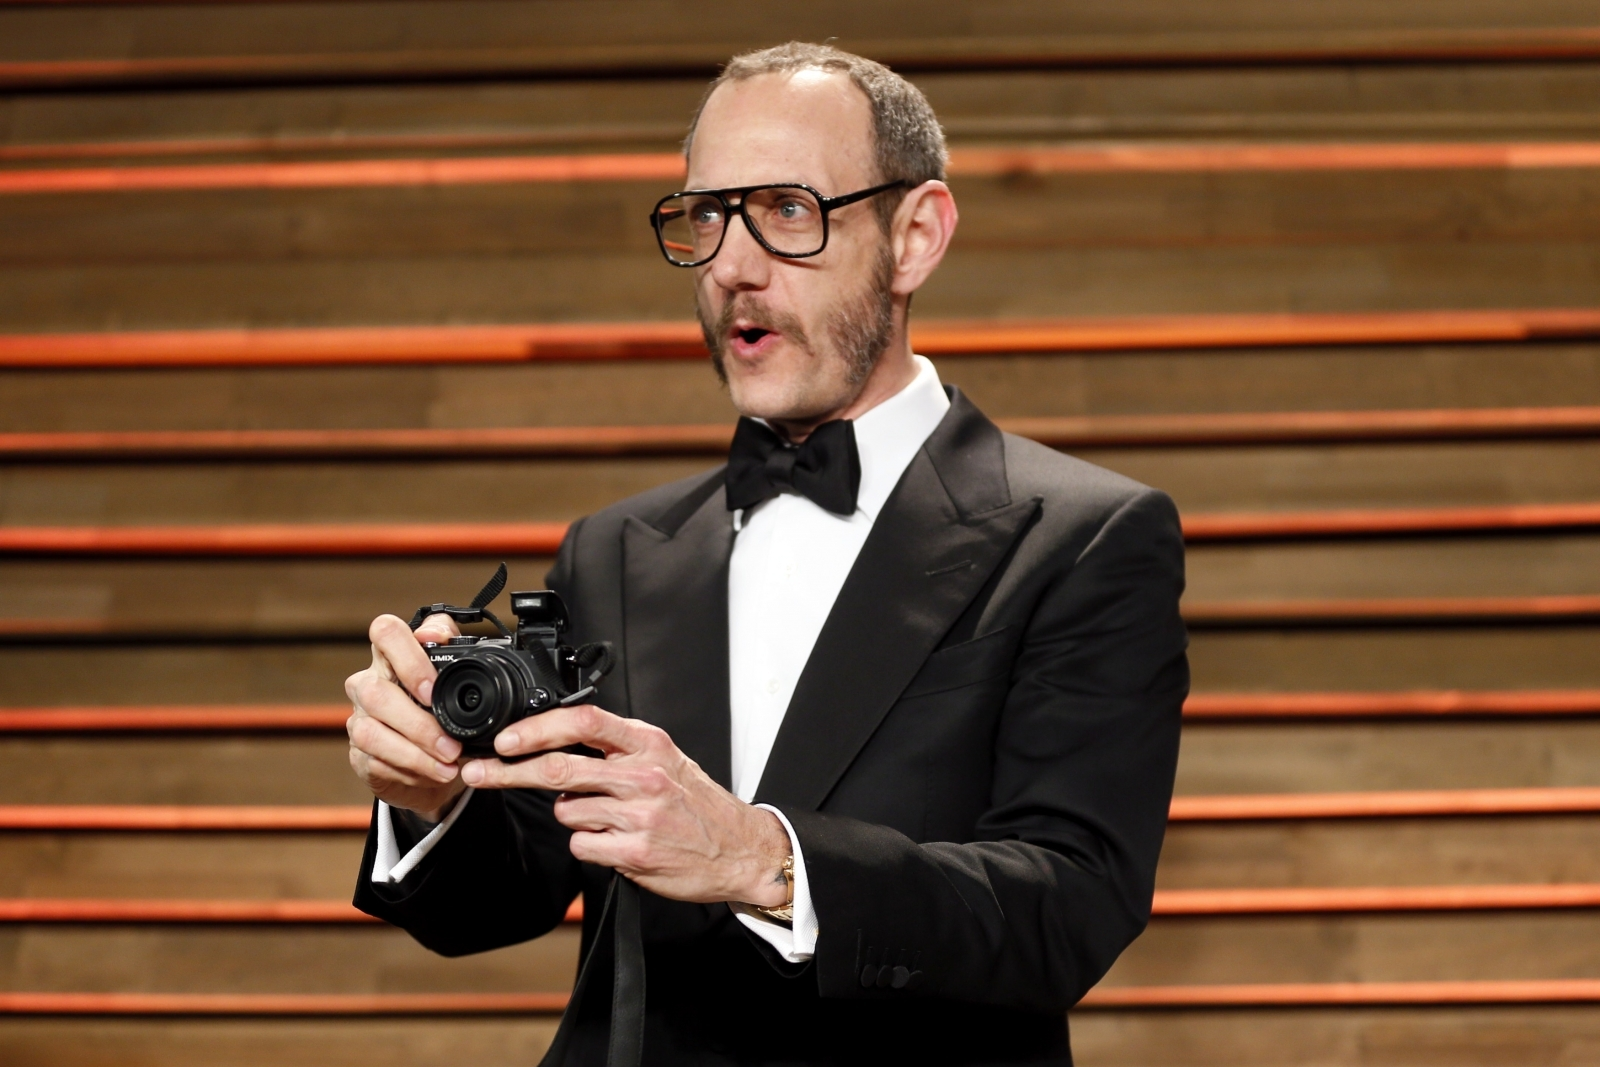 Photographer Terry Richardson Banned From Working With Major Fashion Magazines